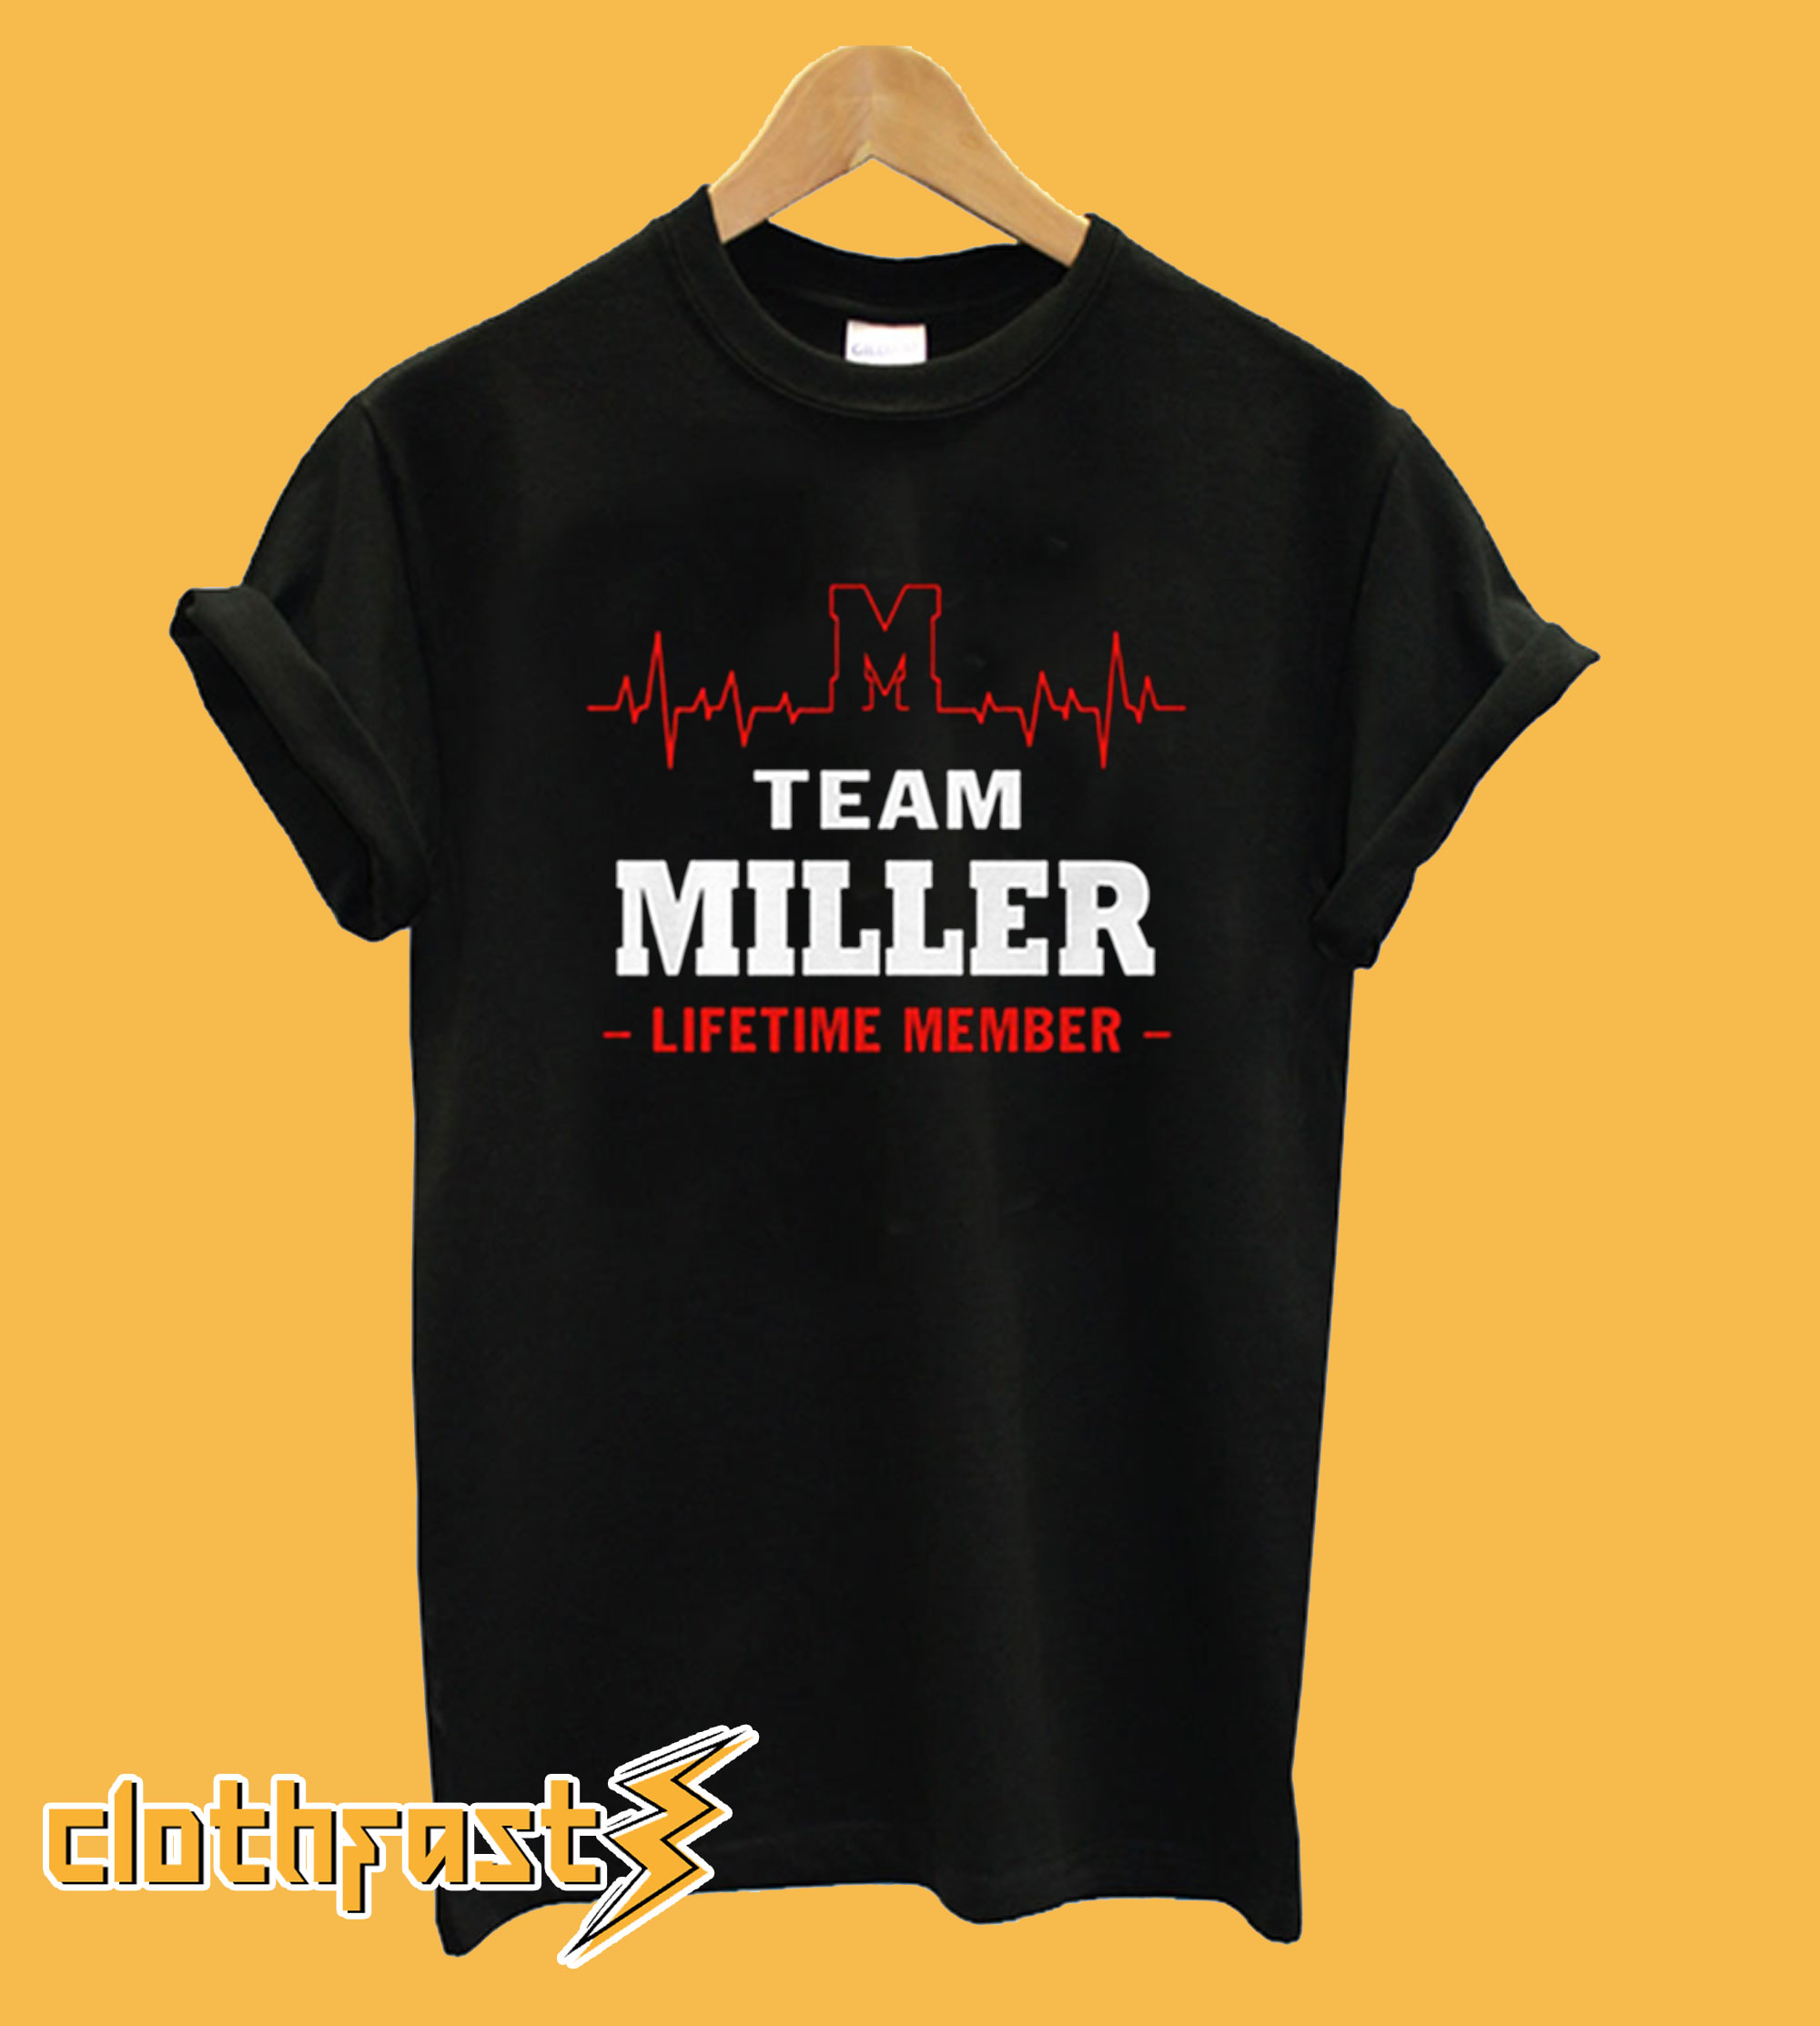 Team miller lifetime member T-shirt